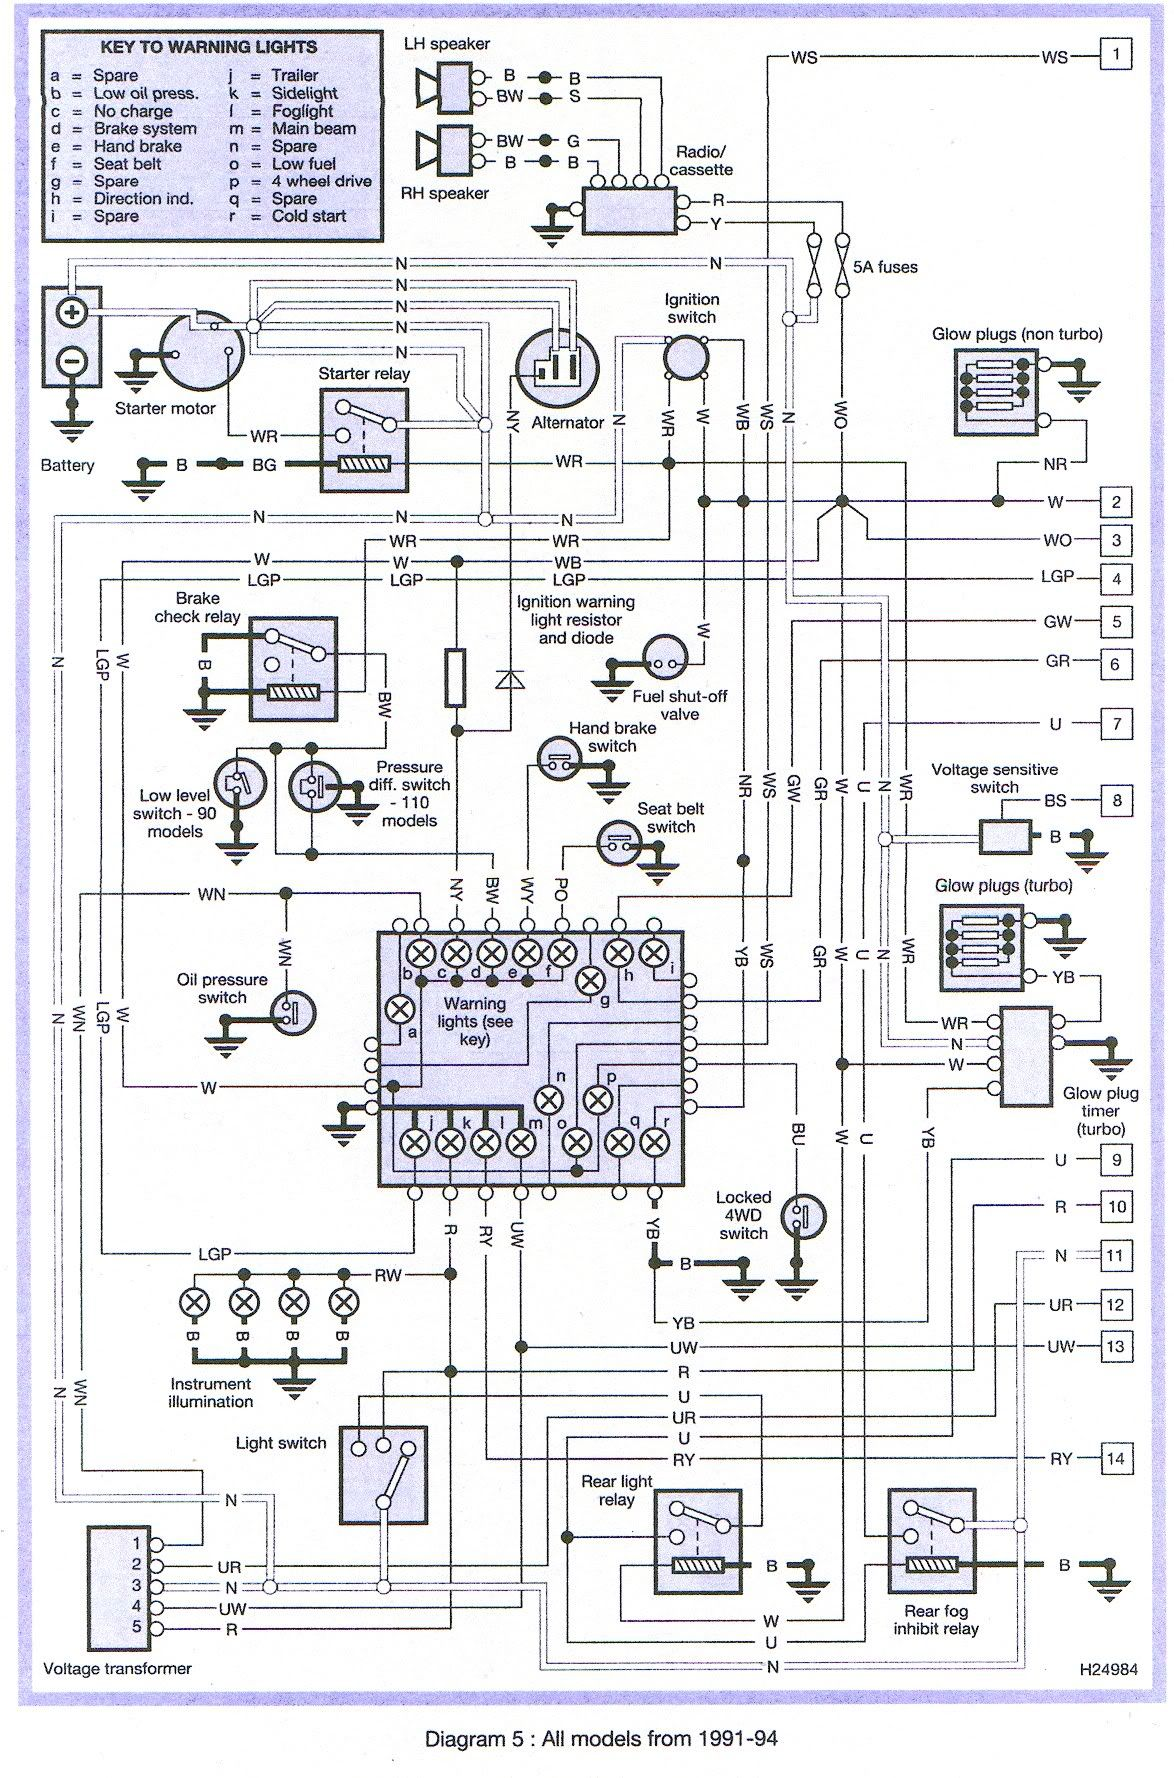 96 range rover engine diagram share circuit diagrams 96 land rover discovery wiring diagram wiring diagram [ 1174 x 1778 Pixel ]